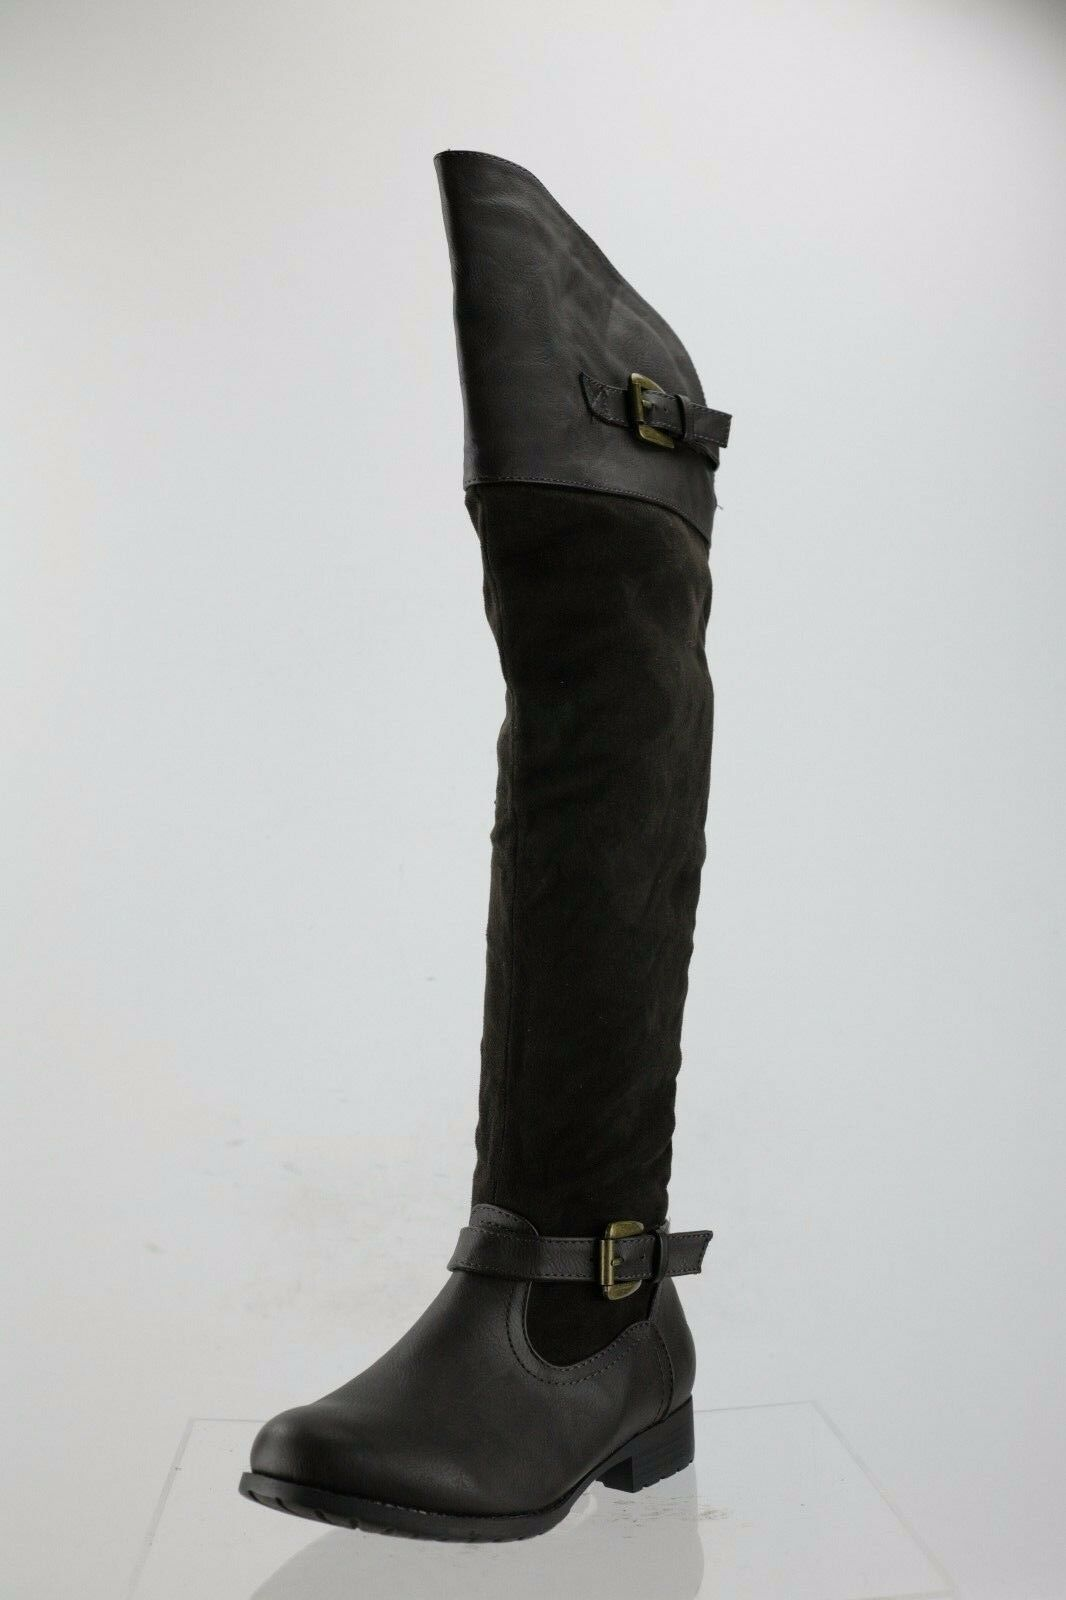 Women's Bucco Tinlee Brown Leather/Suede Over the Knee Boots Size 7 M